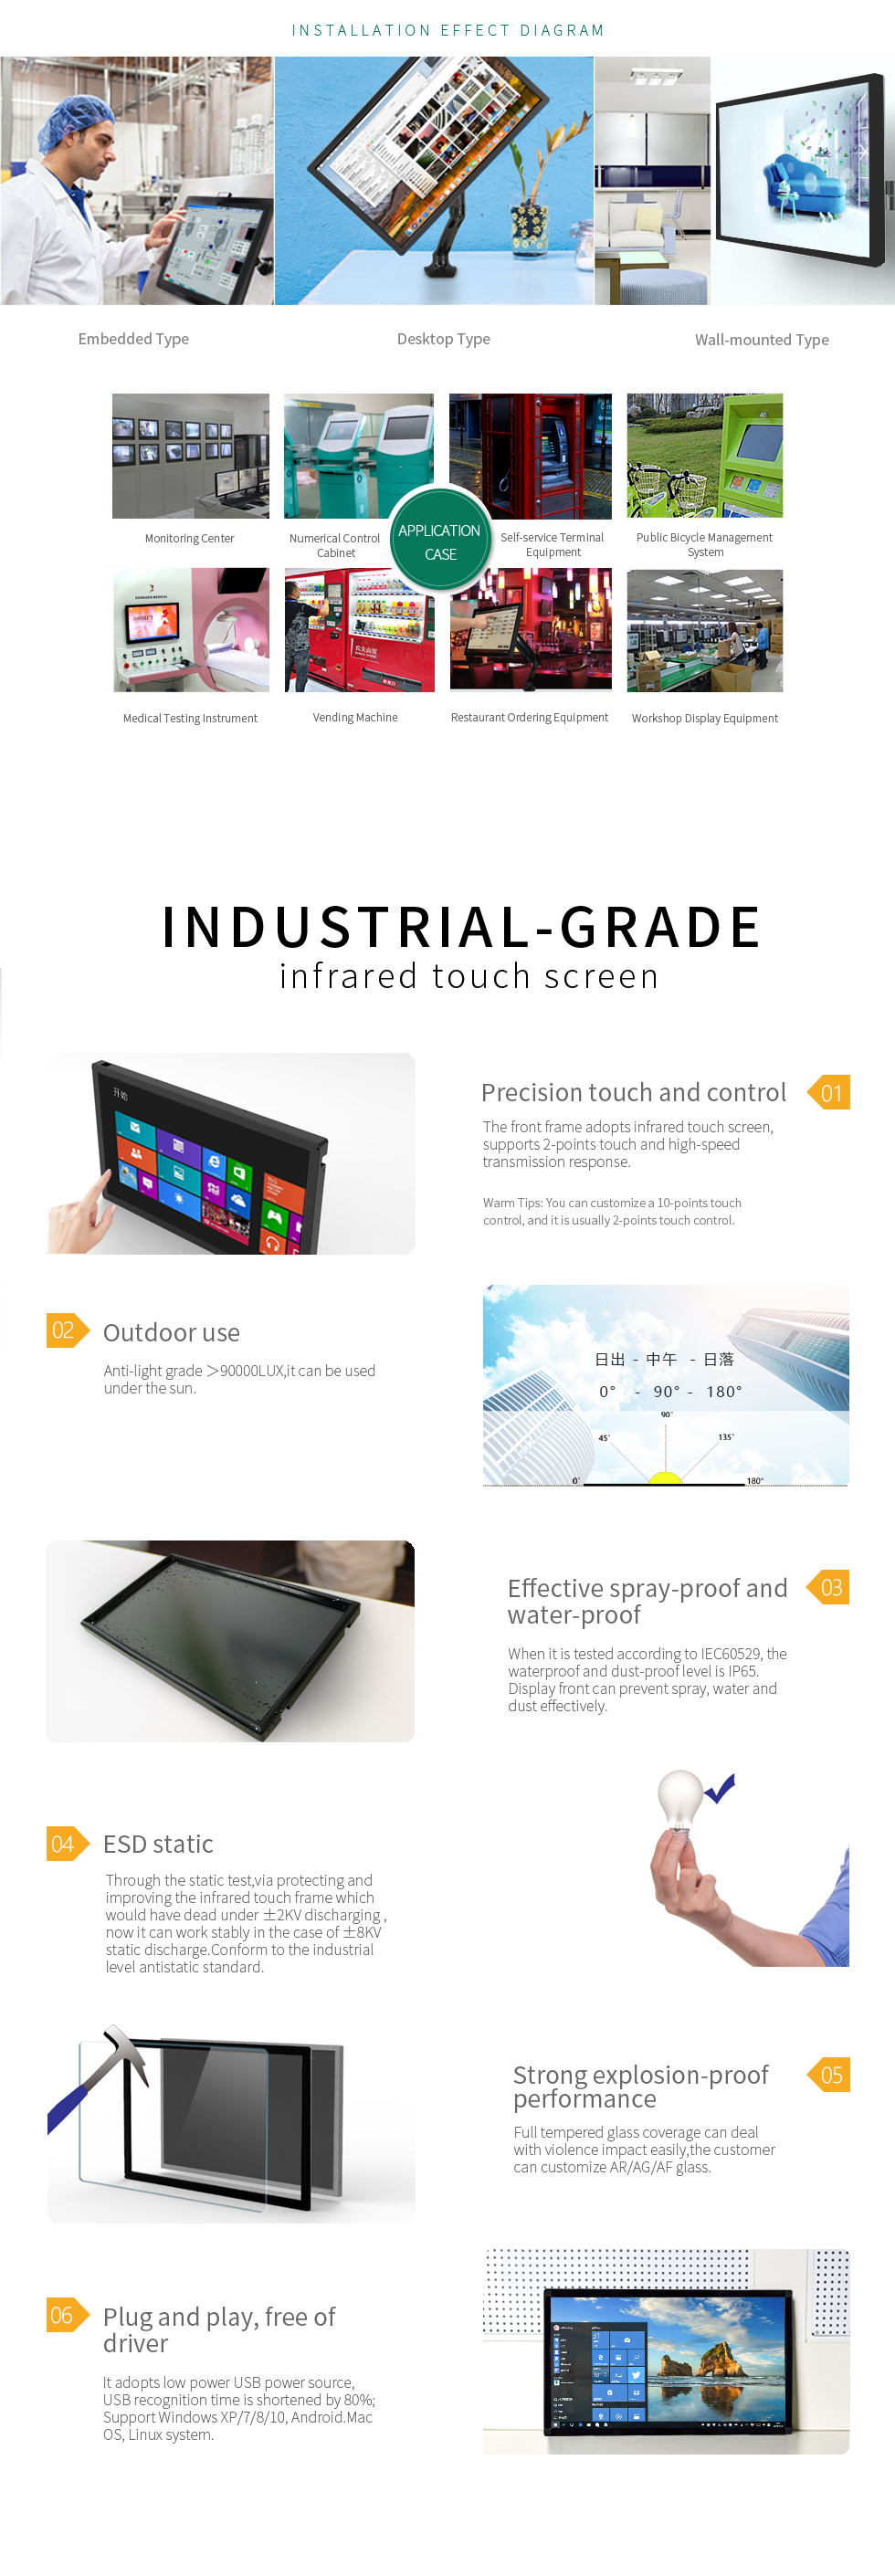 [TMDtouch]Cheap Touch Screen Monitor,27 inch Monitor Touch Screen for Industrial Environment